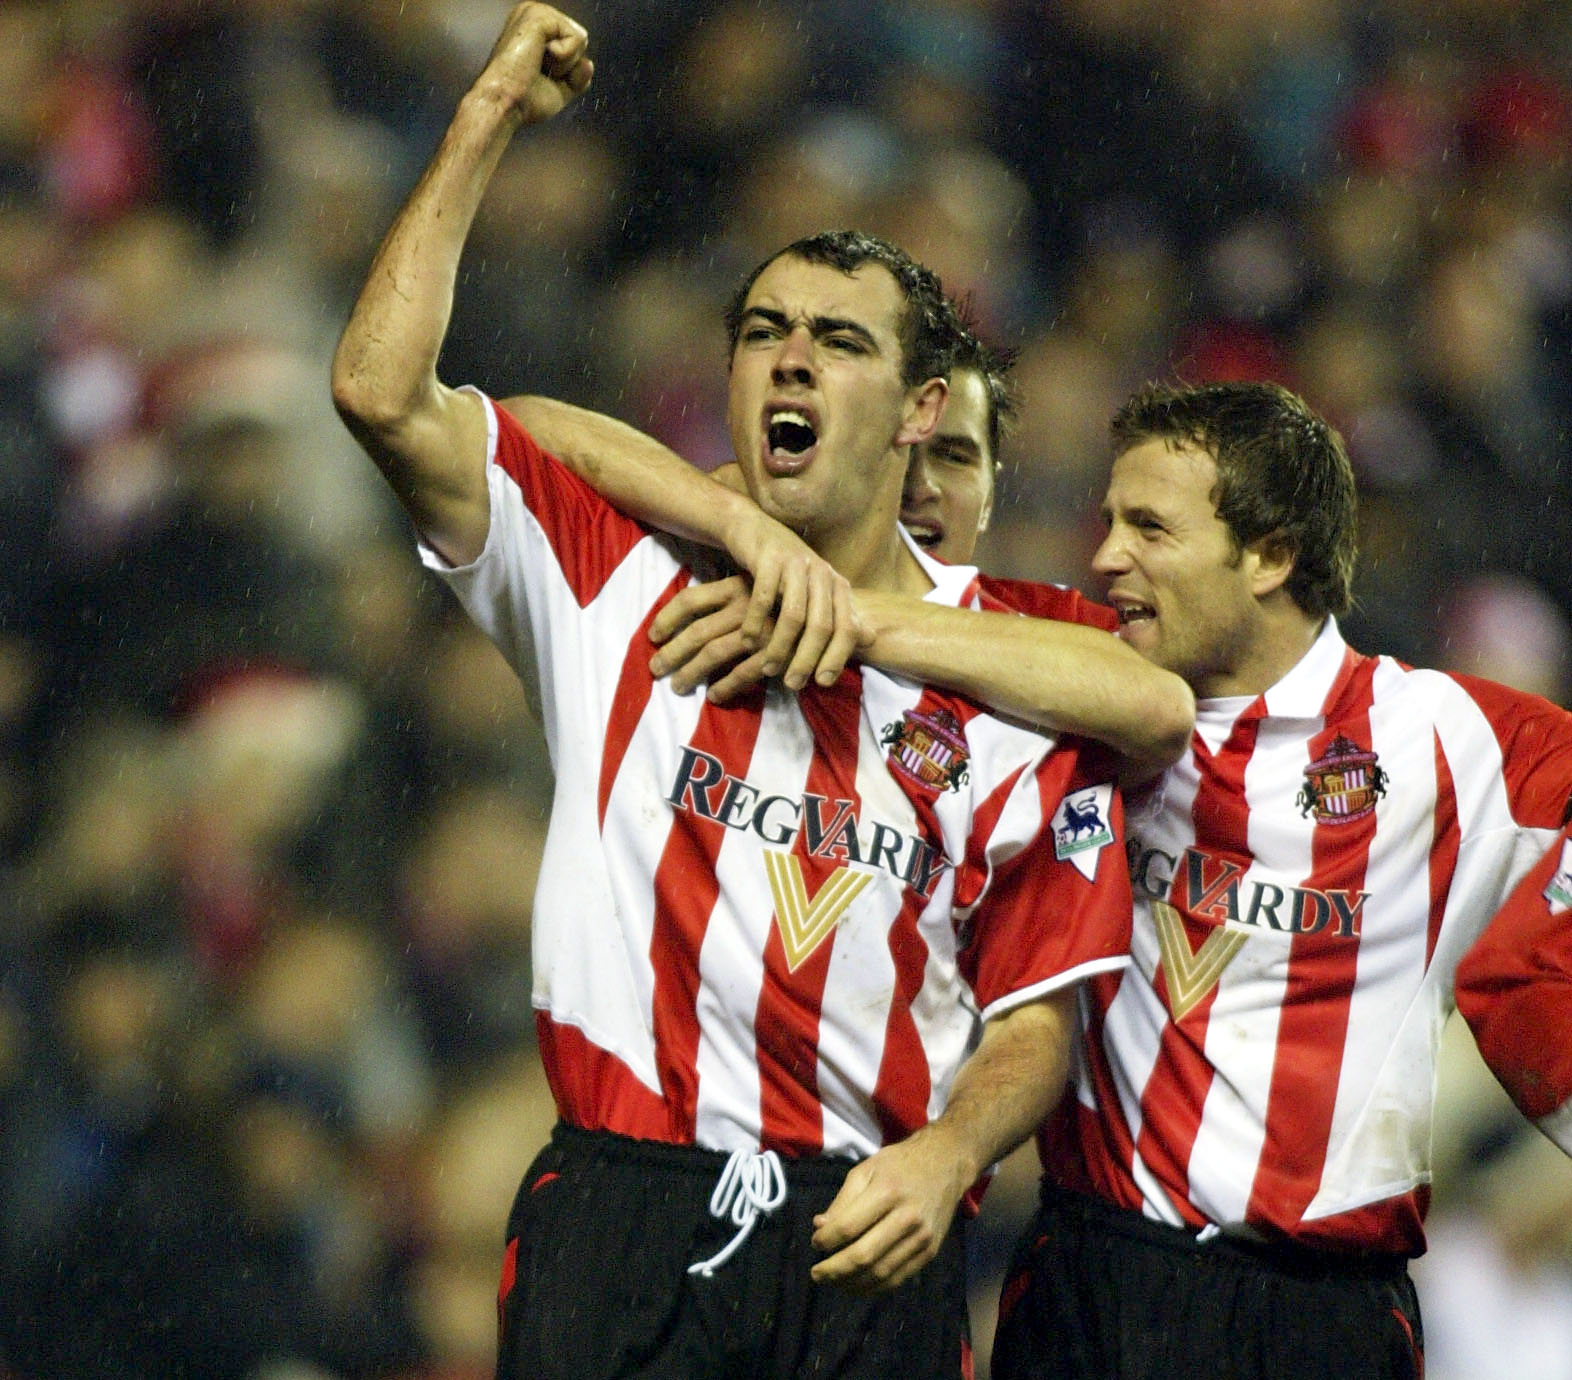 Top 50 Sunderland players of the past 25 years (Part 3): Local talent & a current England player